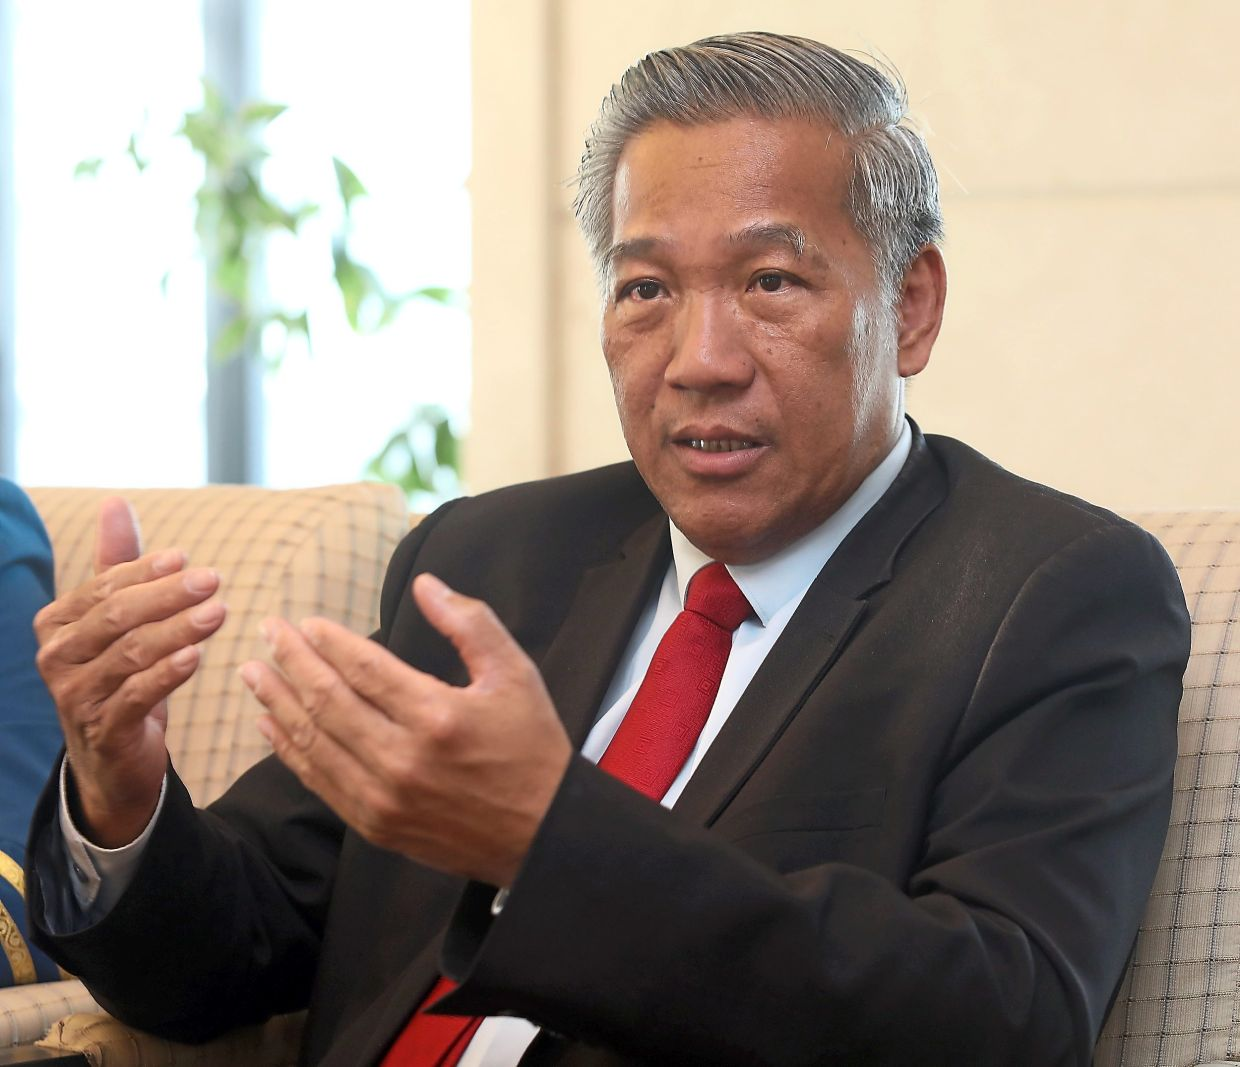 Not much benefit seen for SMEs, says association chief